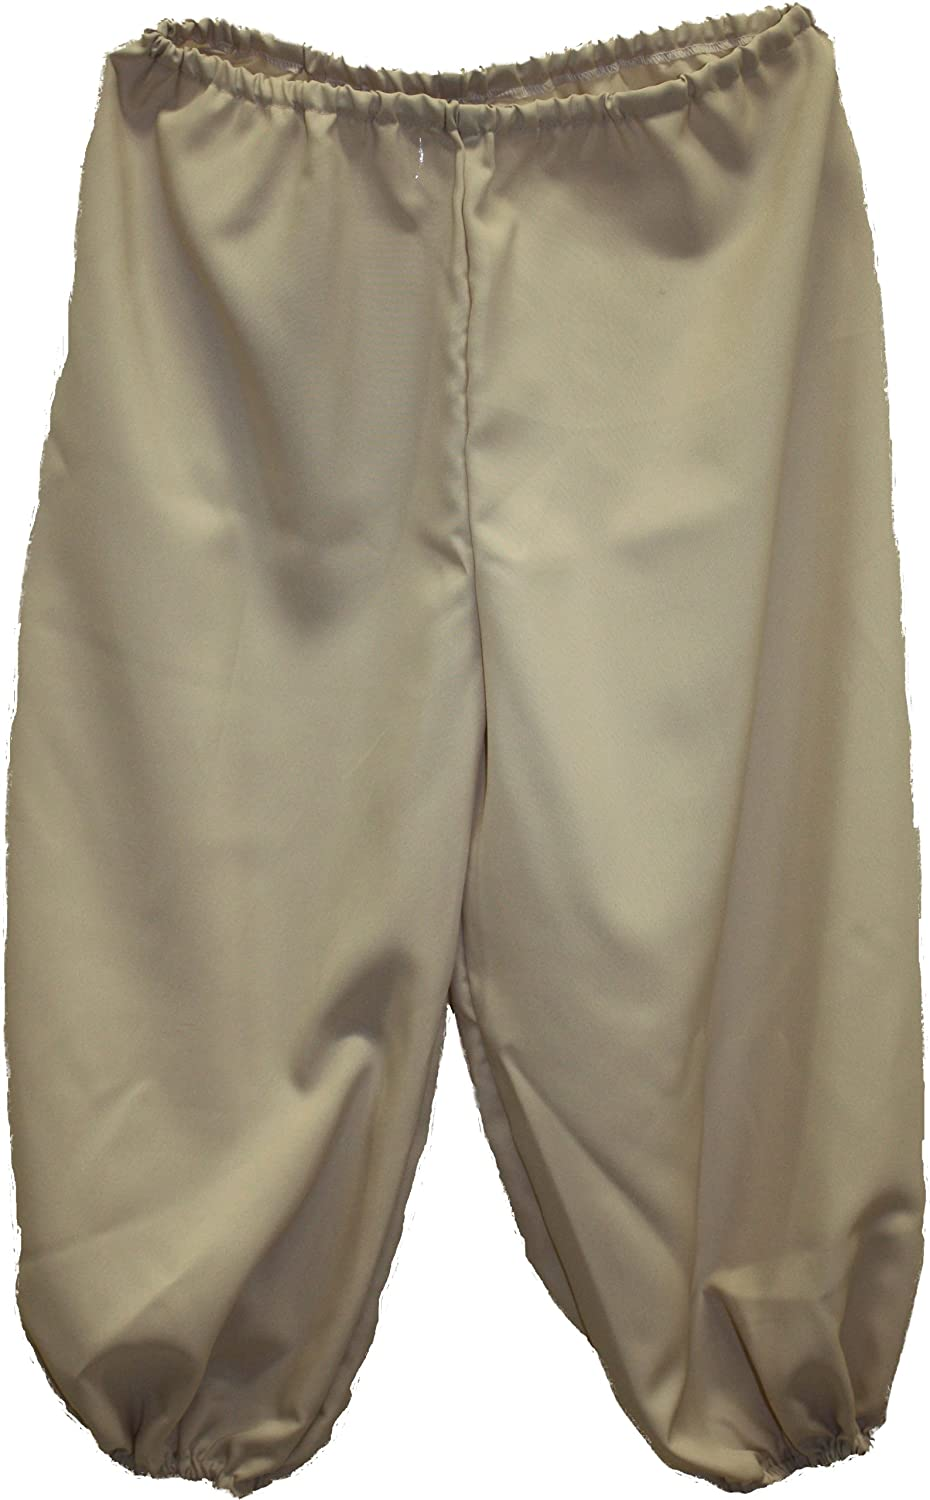 Deluxe Adult Costumes - Men's tan pirate knickers, pirate breeches, pirate pants, pirate trousers by Alexanders Costumes